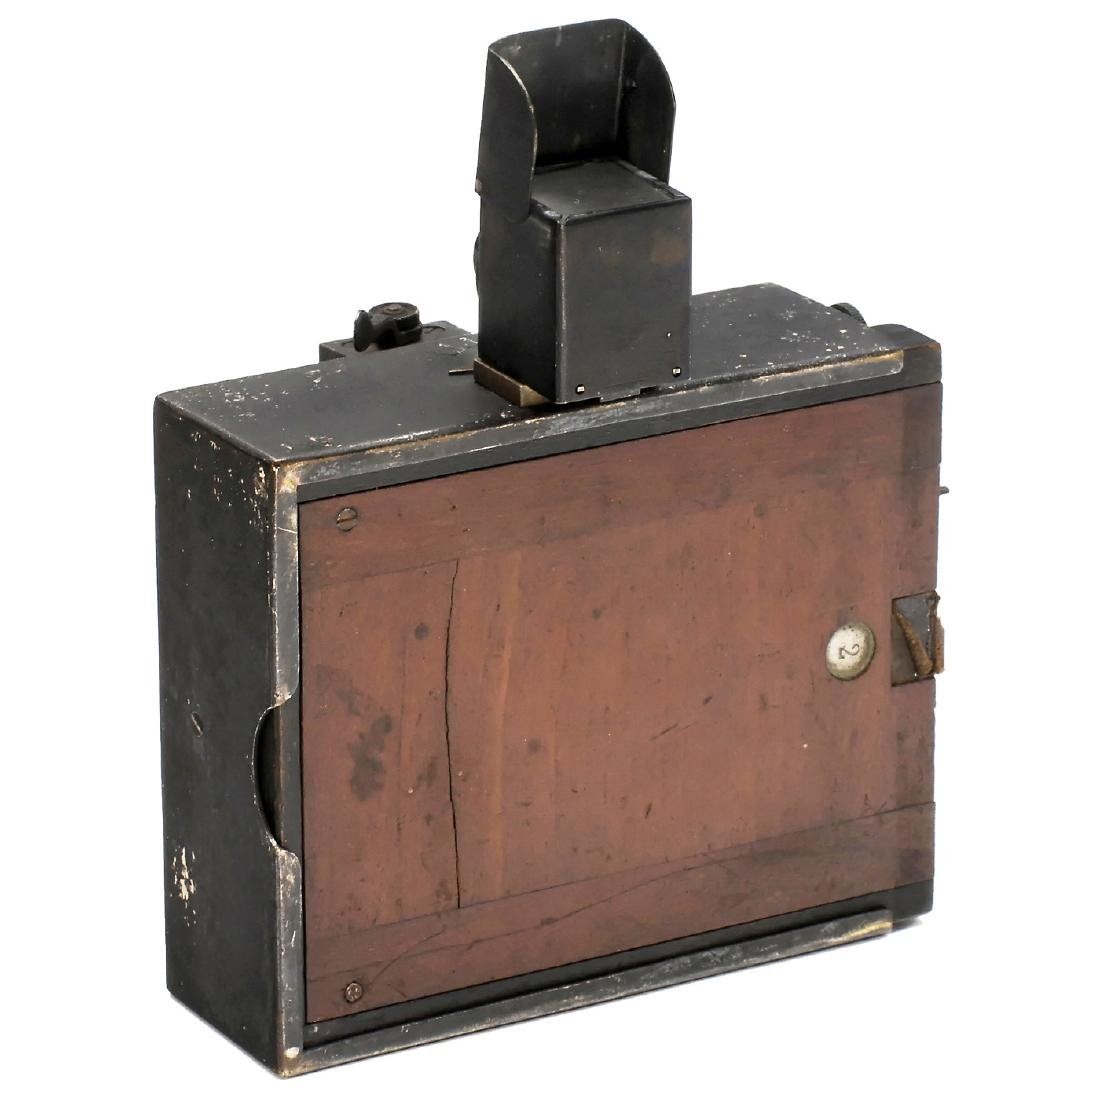 Photosphere All-Metal Camera (8 x 9 cm), 1888 - 2